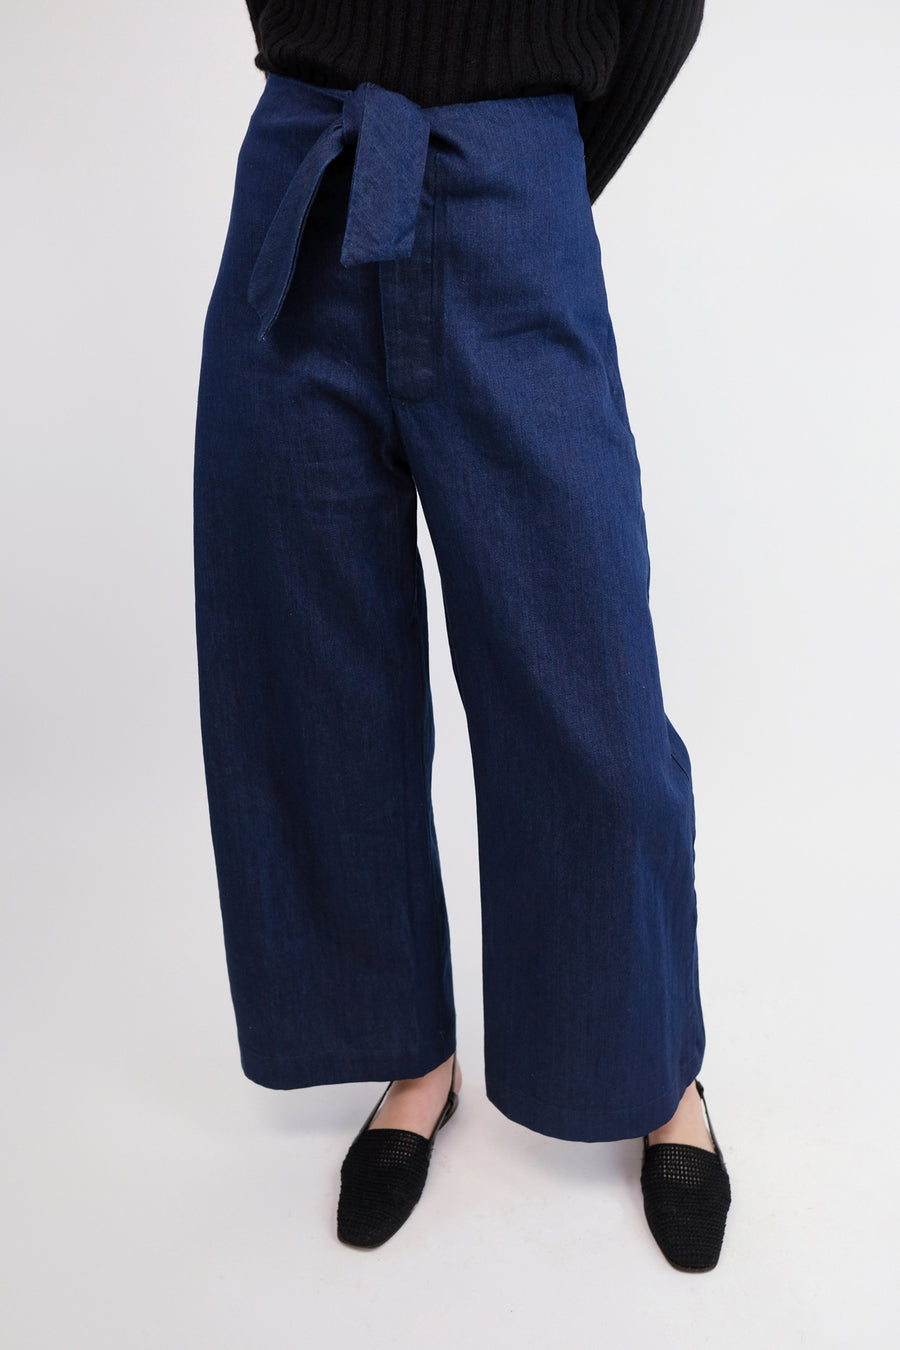 Vintage Blue Knotted Sailor Pant